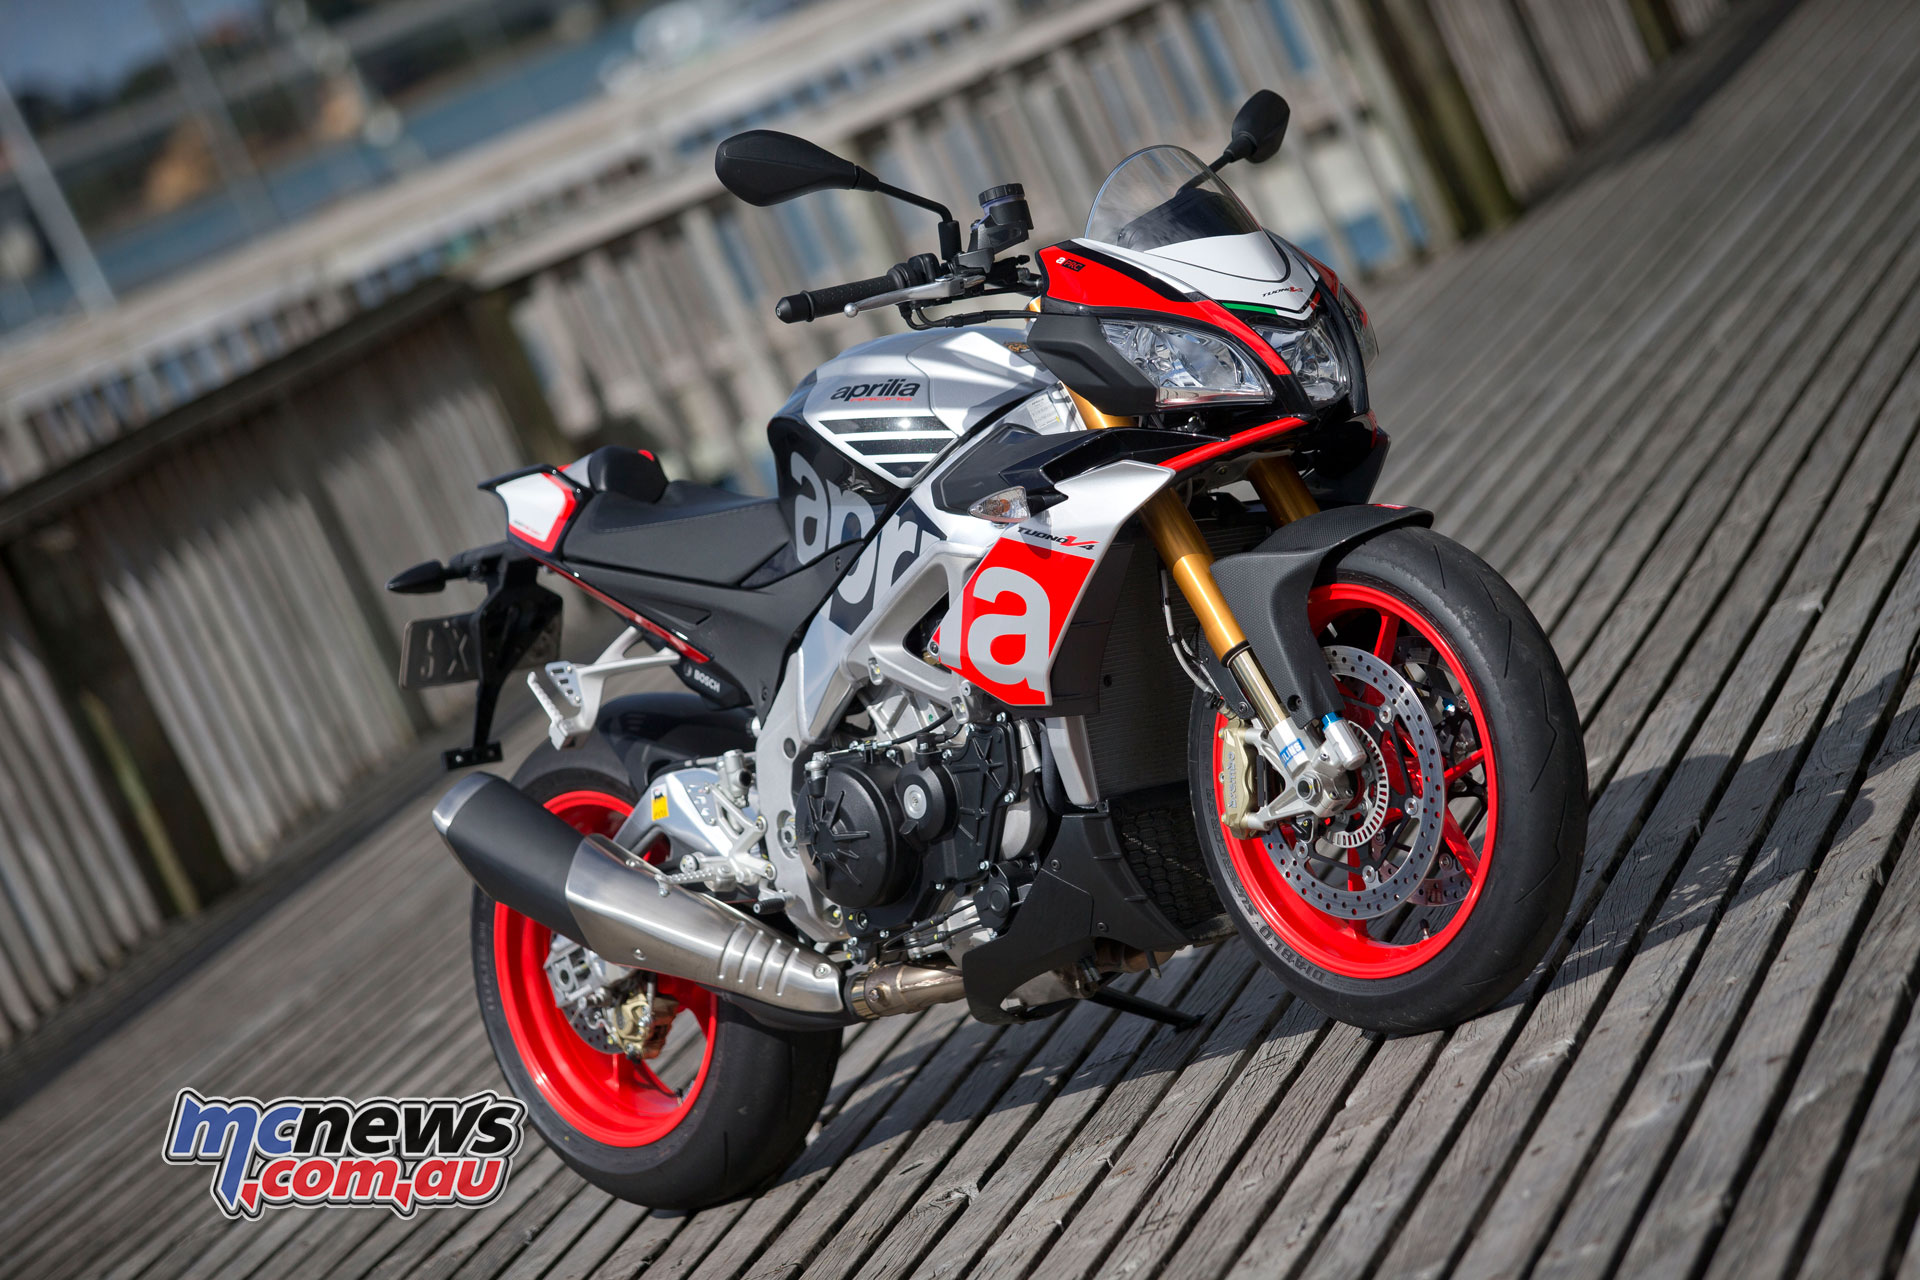 Aprilia Tuono V4 1100 Factory Review 175hp 121nm Motorcycle News Sport And Reviews